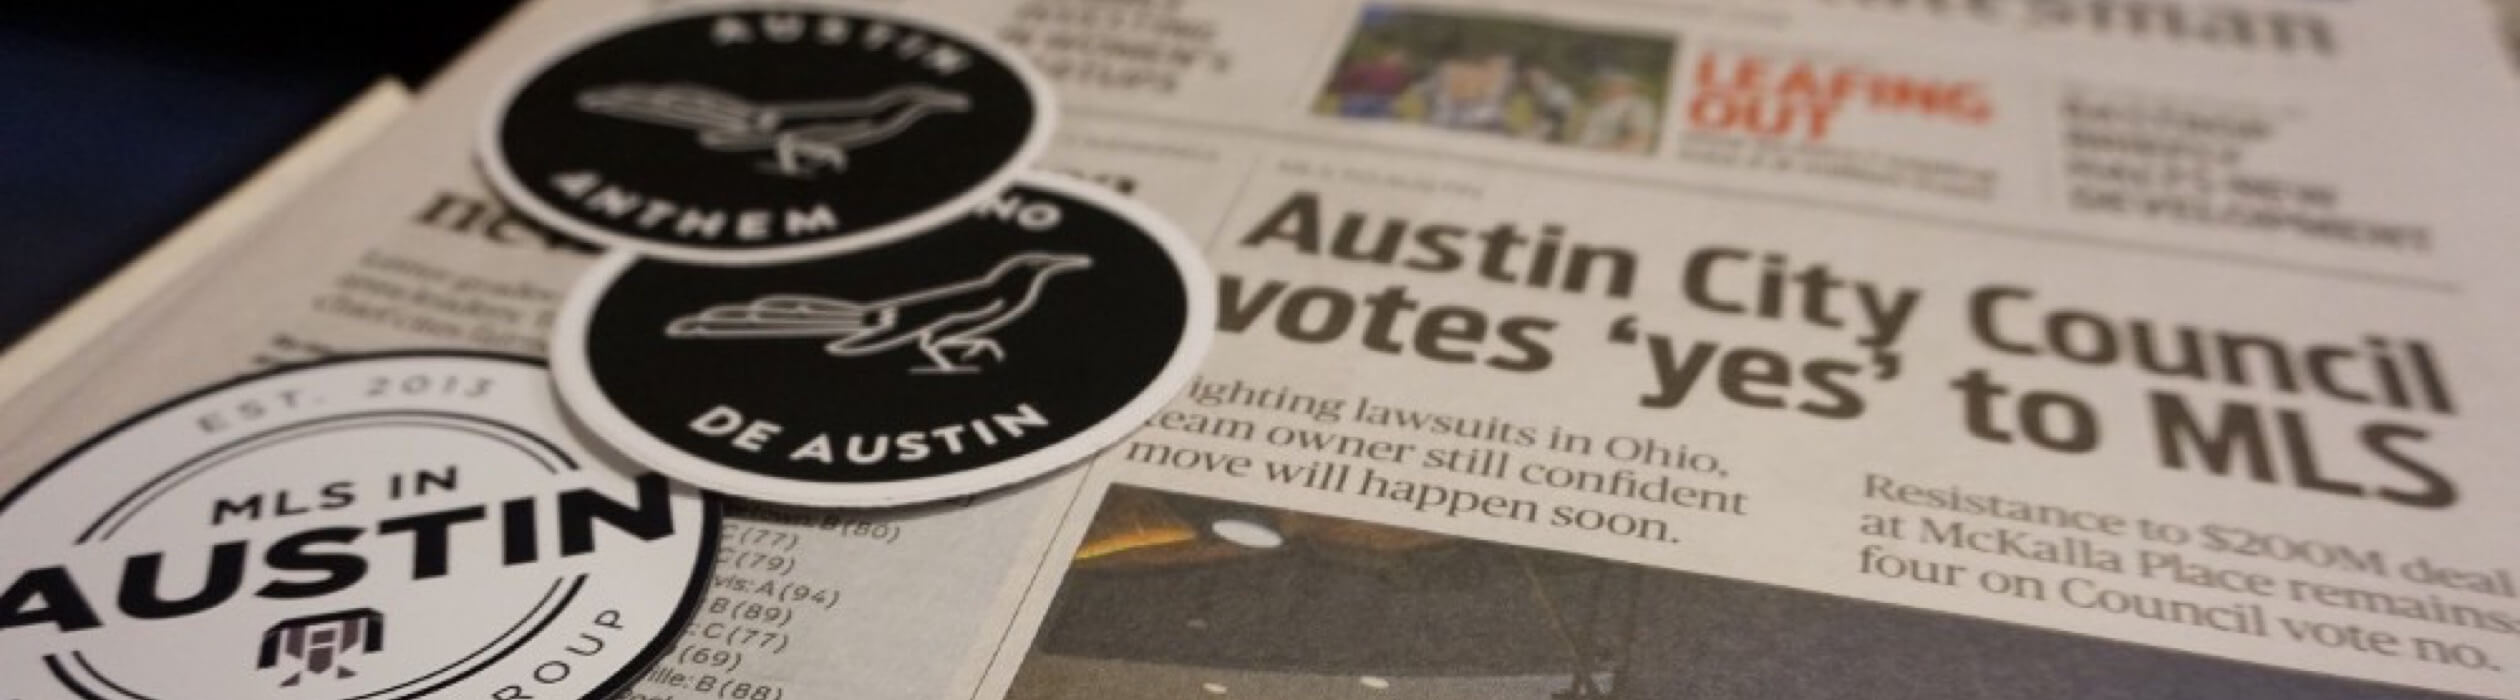 The paper from the City Council approving Austin FC.